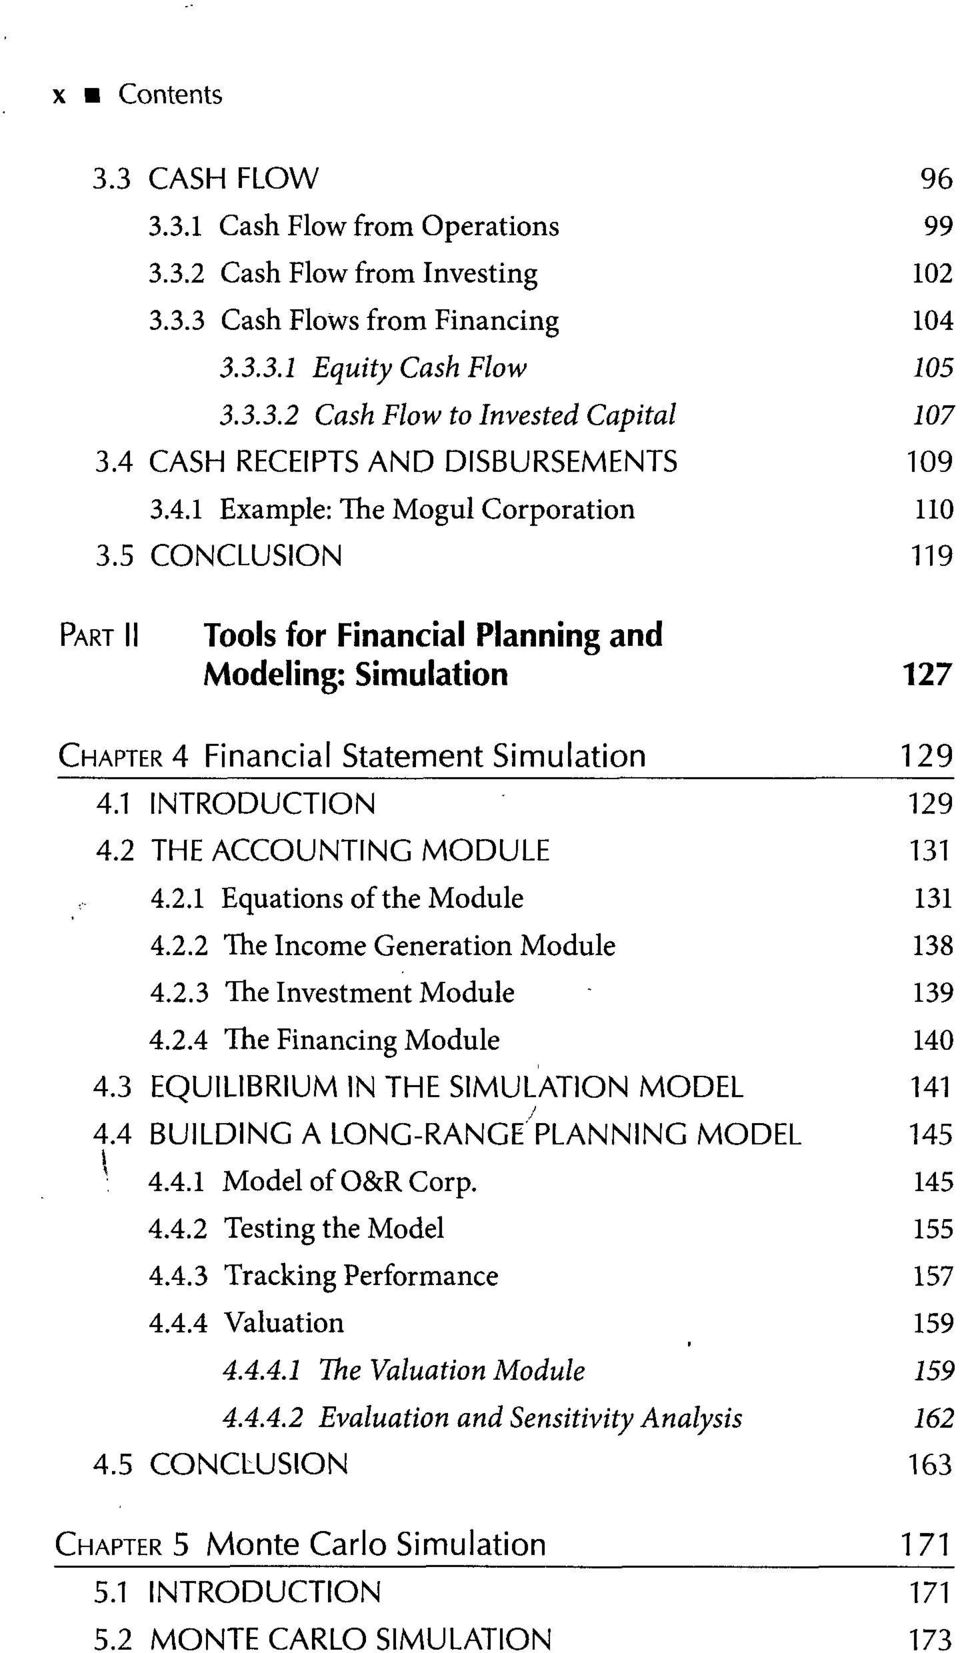 5 CONCLUSION 119 PART II Tools for Financial Planning and Modeling: Simulation 127 CHAPTER 4 Financial Statement Simulation 1_29 4.1 INTRODUCTION 129 4.2 THE ACCOUNTING MODULE 131 4.2.1 Equations of the Module 131 4.